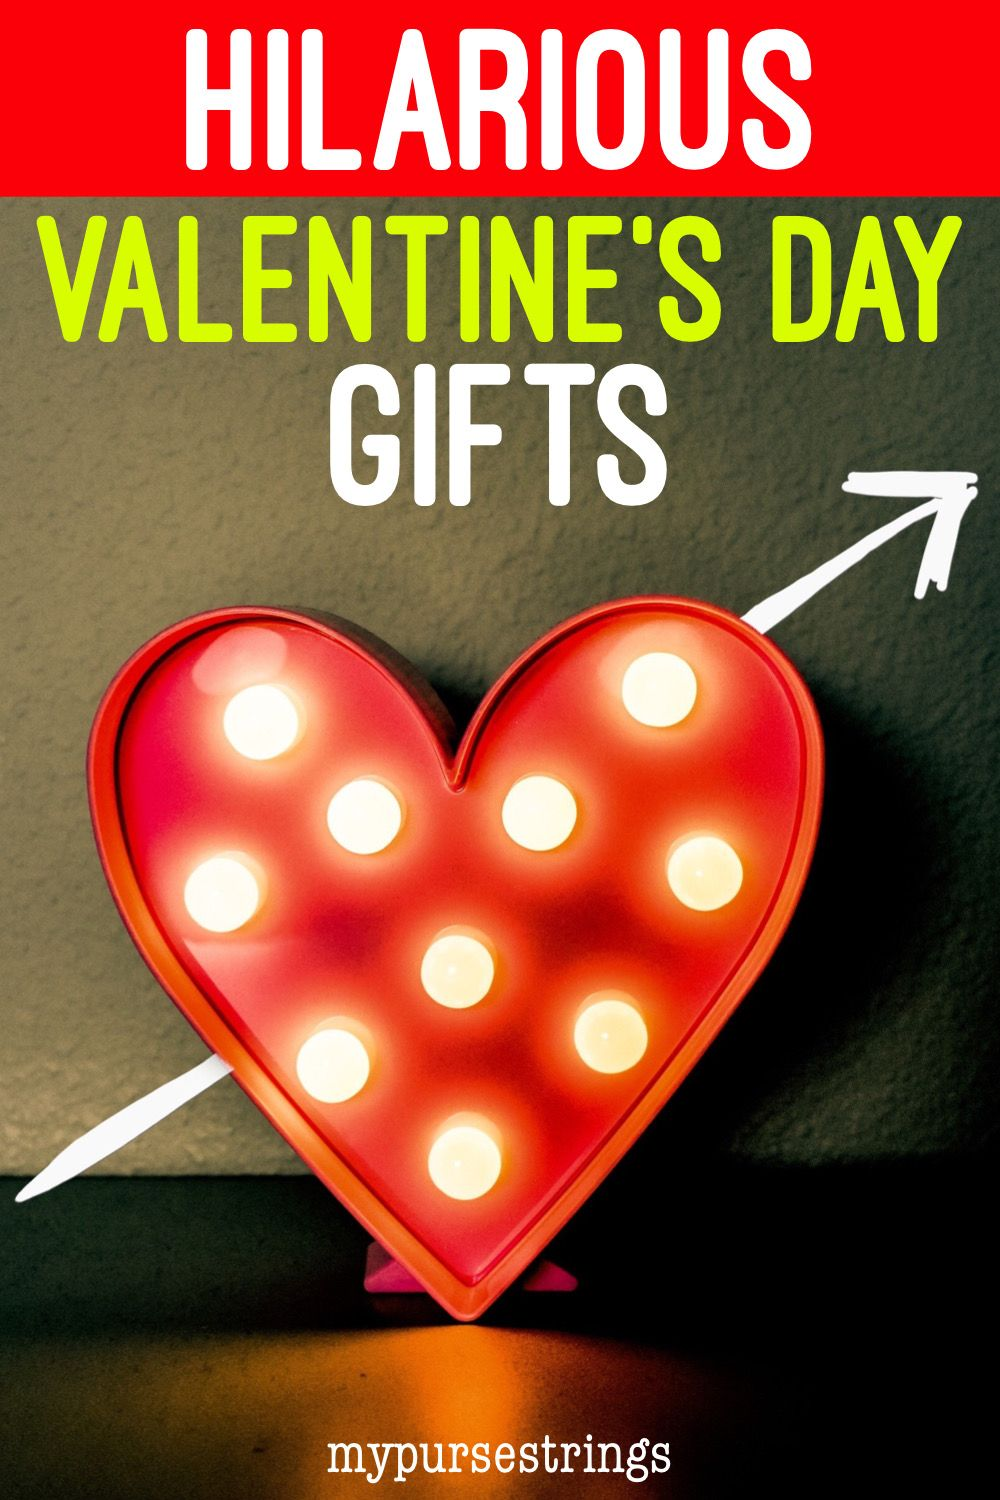 Funny valentines day gifts for married couples keeping